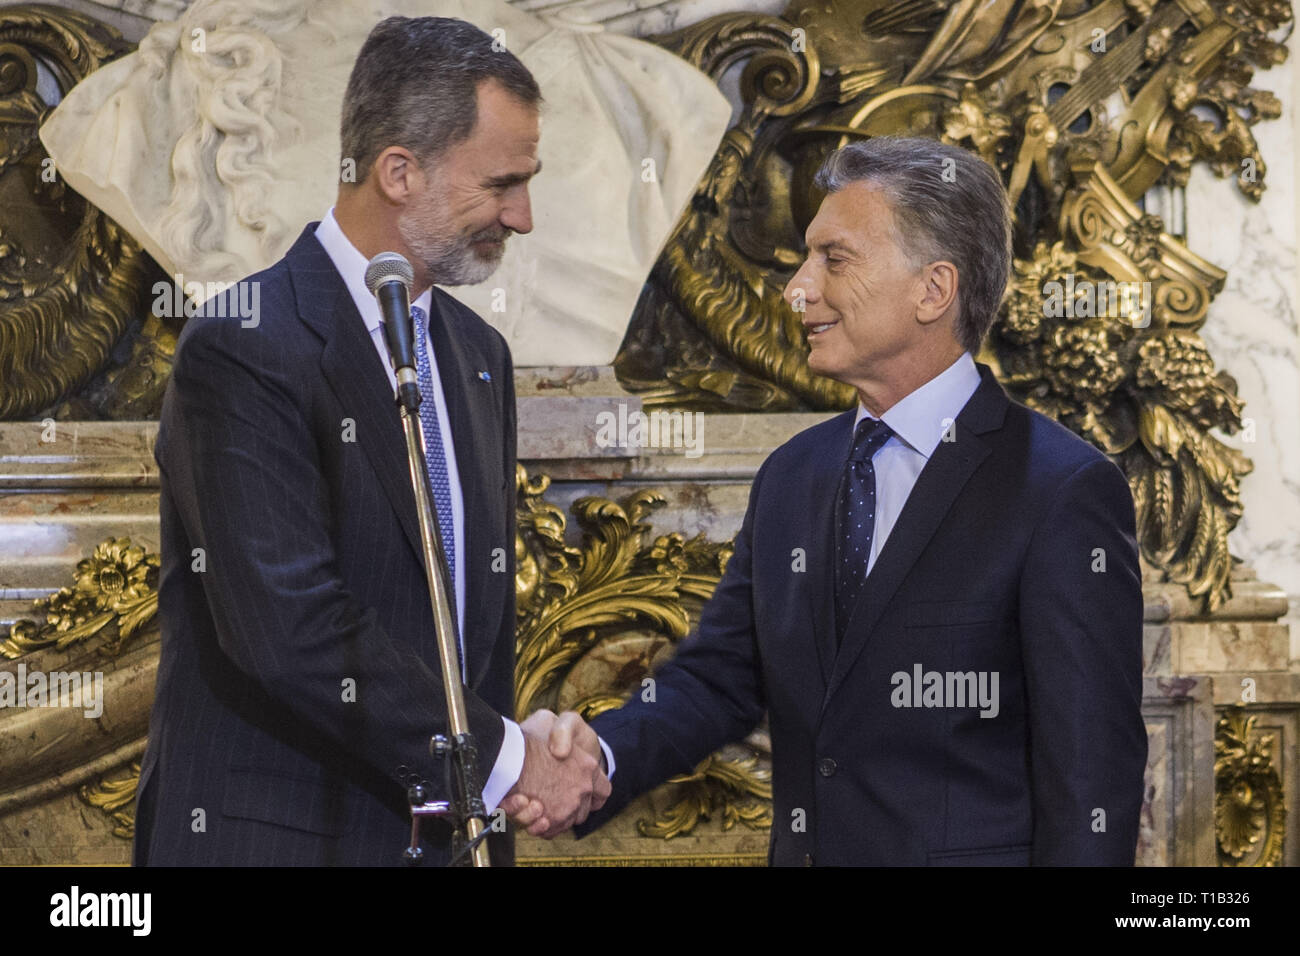 Buenos Aires, Federal Capital, Argentina. 25th Mar, 2019. The King and Queen of Spain, Felipe VI and Letizia Ortiz, arrived on the night of March 24, in Buenos Aires as part of the State visit to Argentina.As expected, the official activities of the monarchs began on Monday, March 25 with a bulky agenda of activities.In the morning, a meeting at the Casa Rosada with President Mauricio Macri and the First Lady, Juliana Awada.The kings arrived at the seat of government where they received honors with the military guard. After taking the official photo in the White Room, Macri and Felipe VI Stock Photo